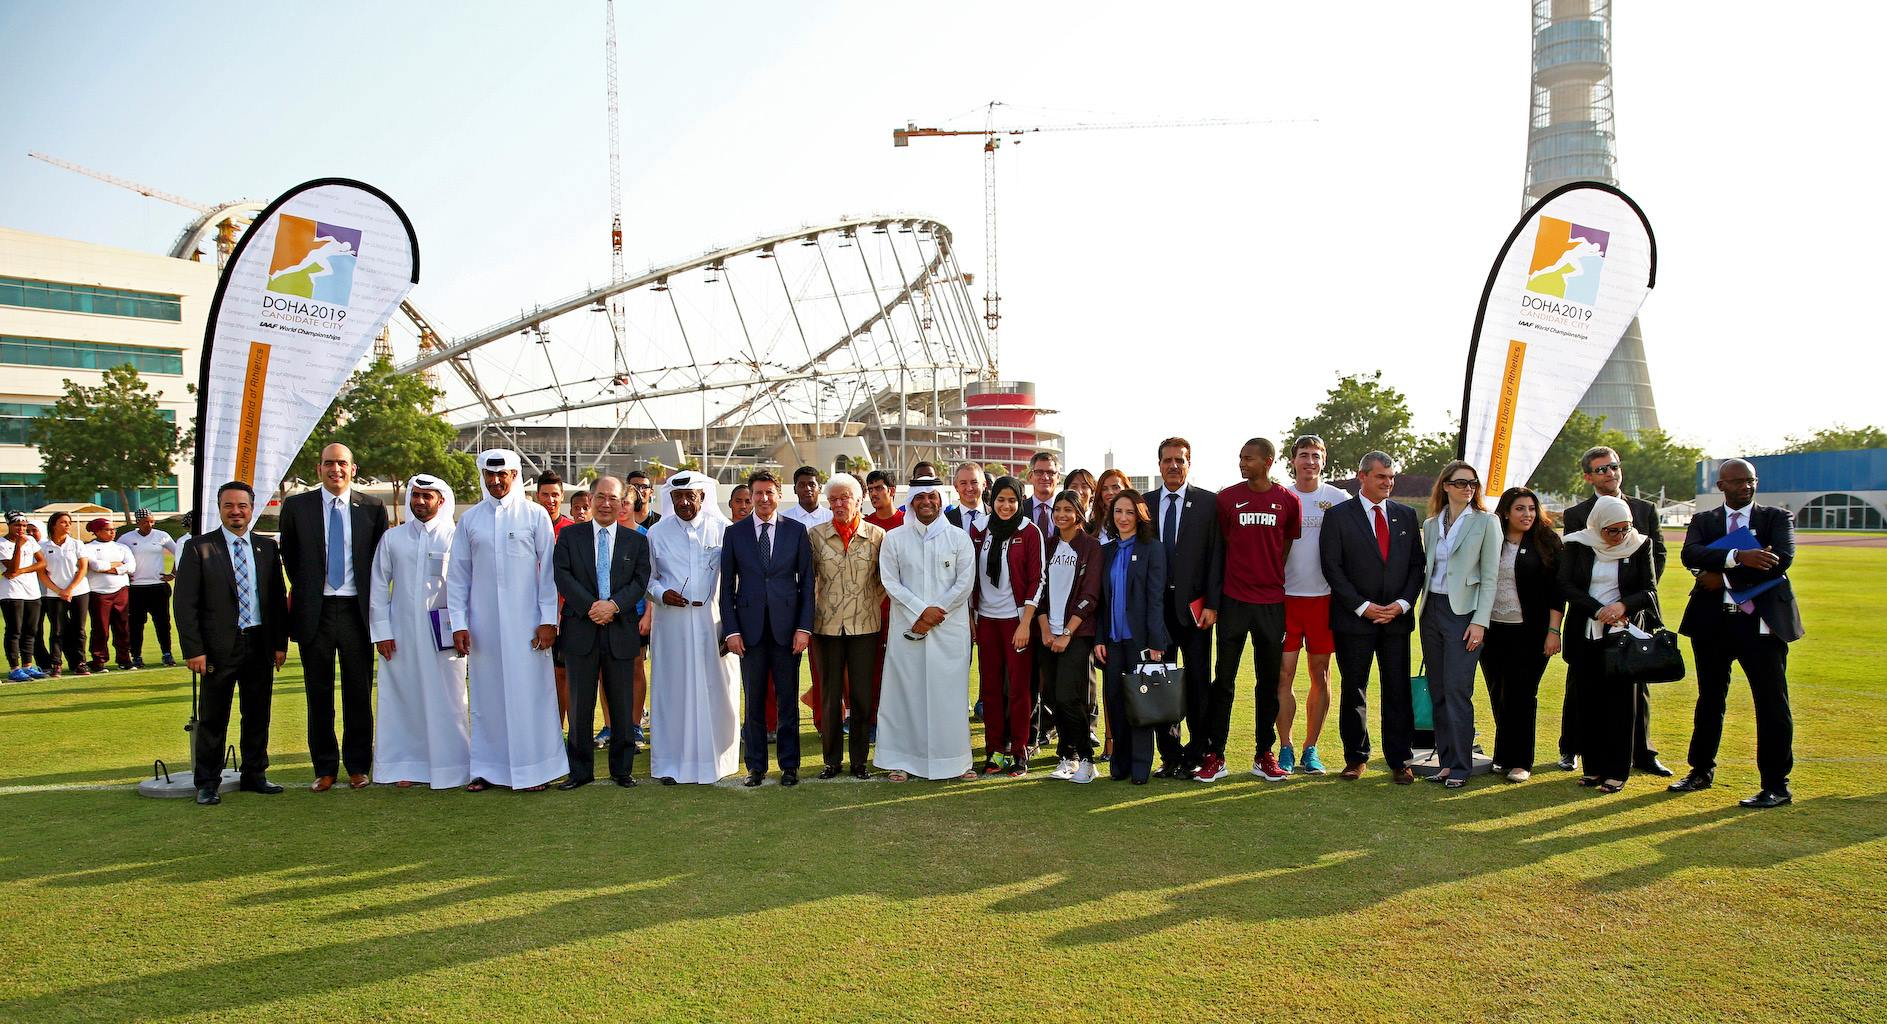 On scene in Doha with the IAAF evaluation commission // photo courtesy Doha 2019